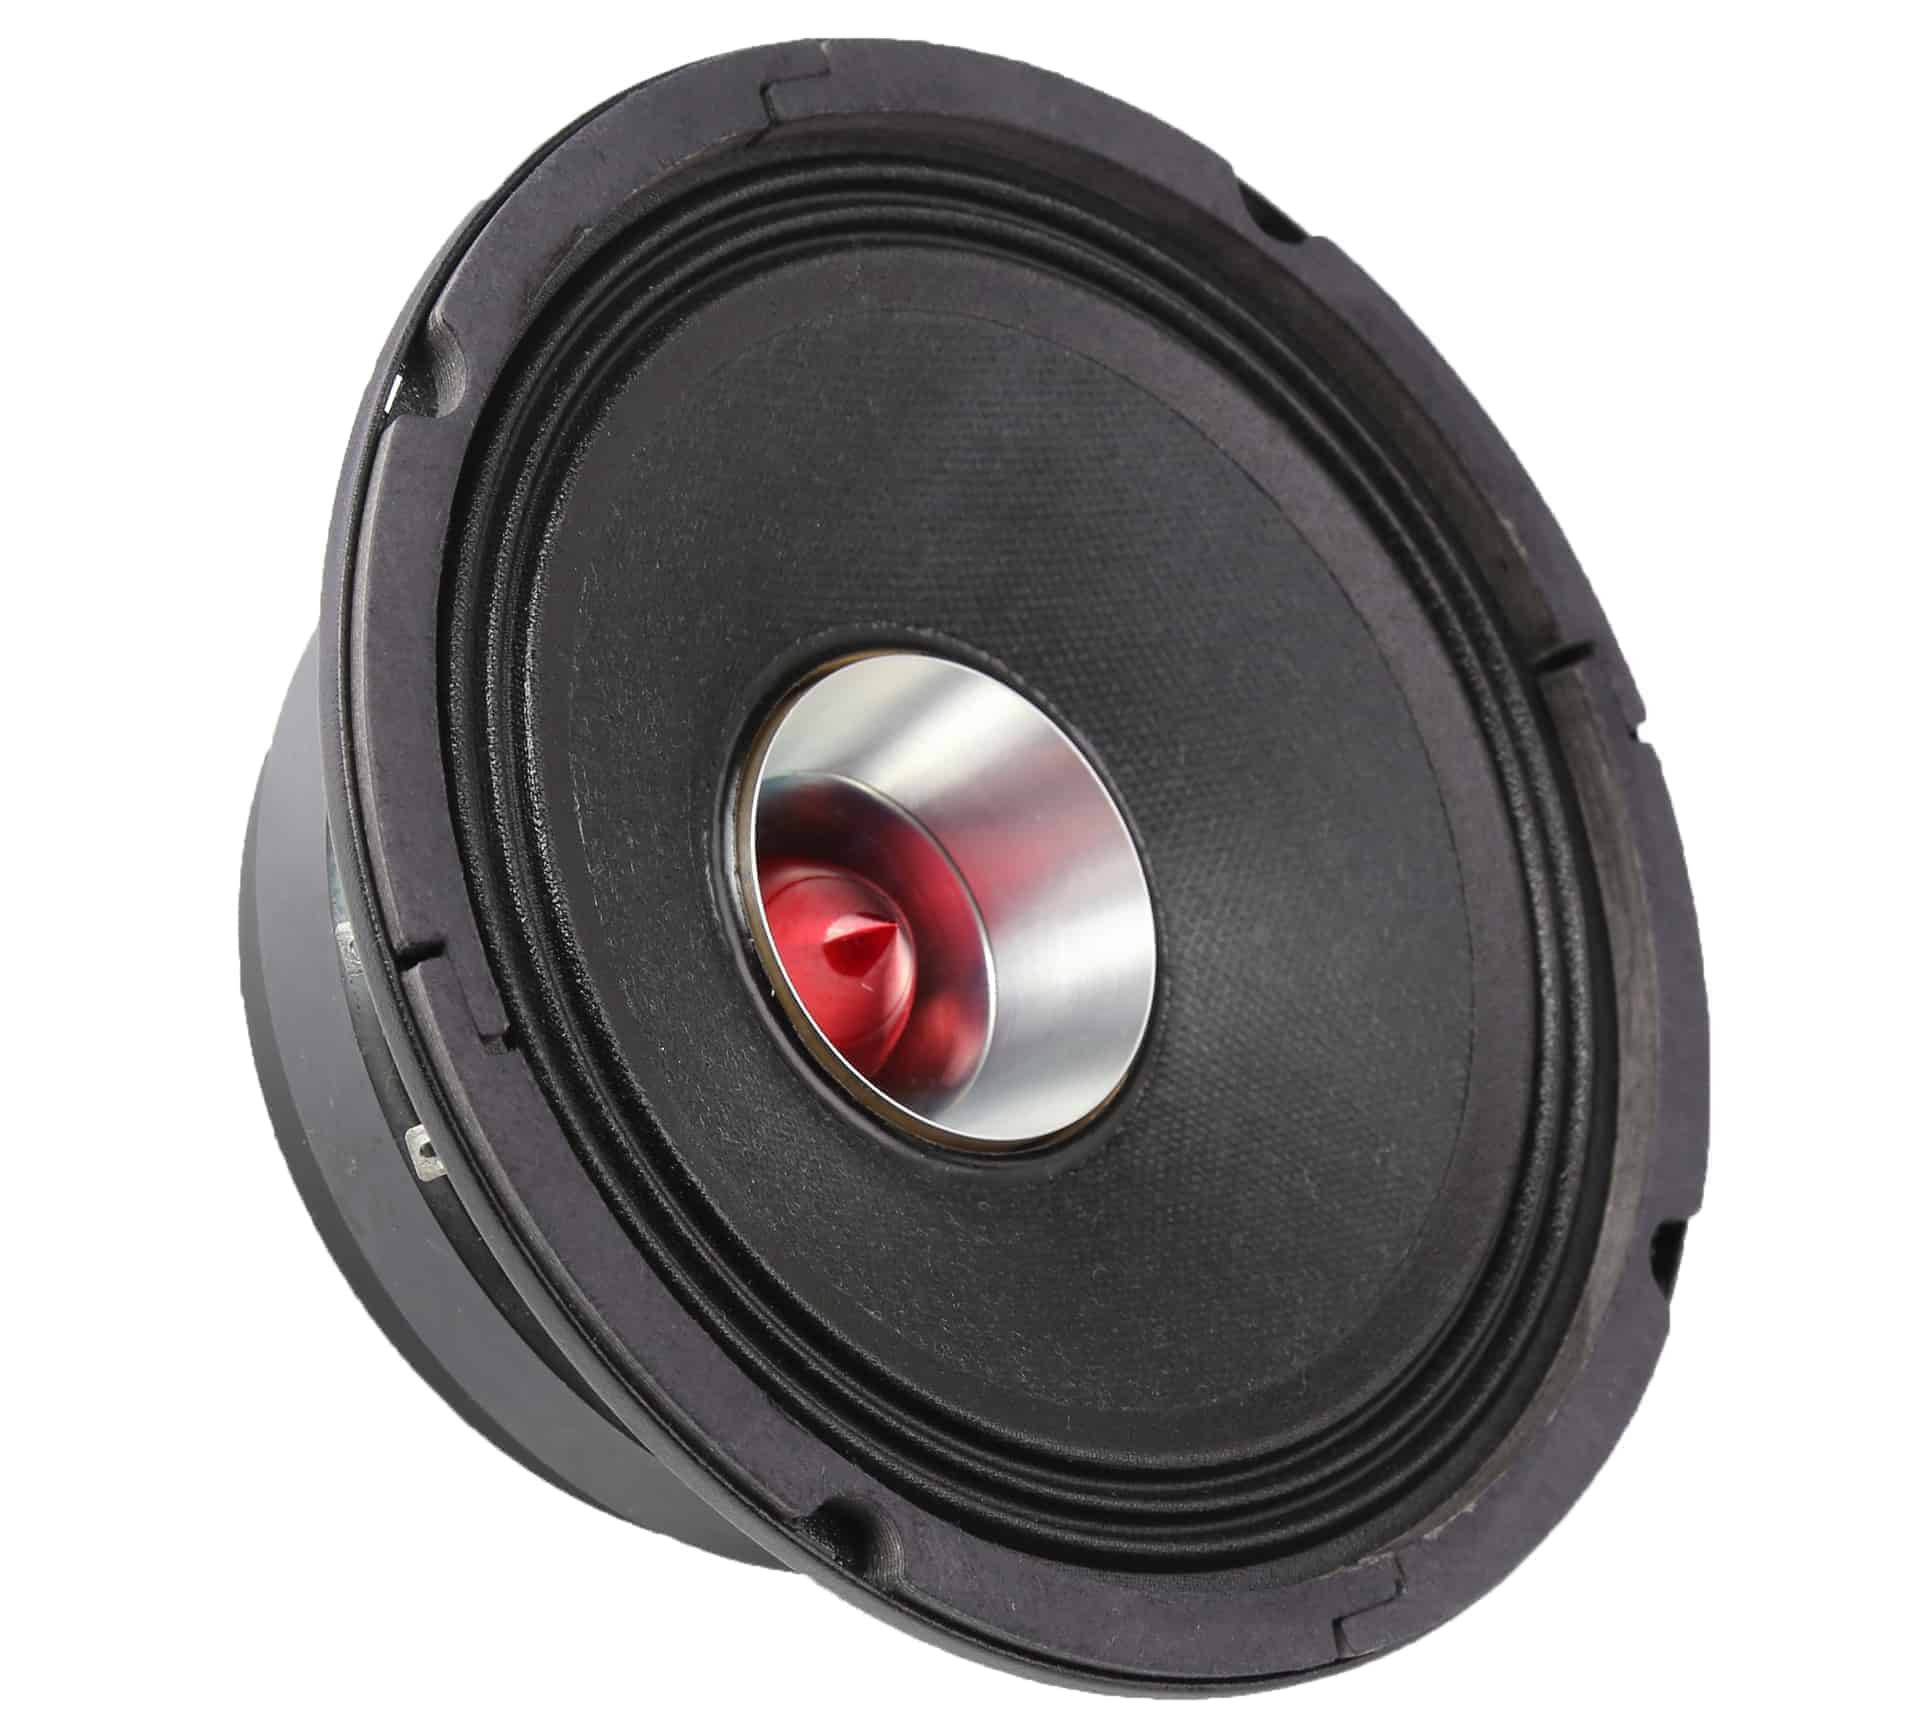 COXC SERIES    PROFESSIONAL COAXIAL SPEAKER (SHALLOW)